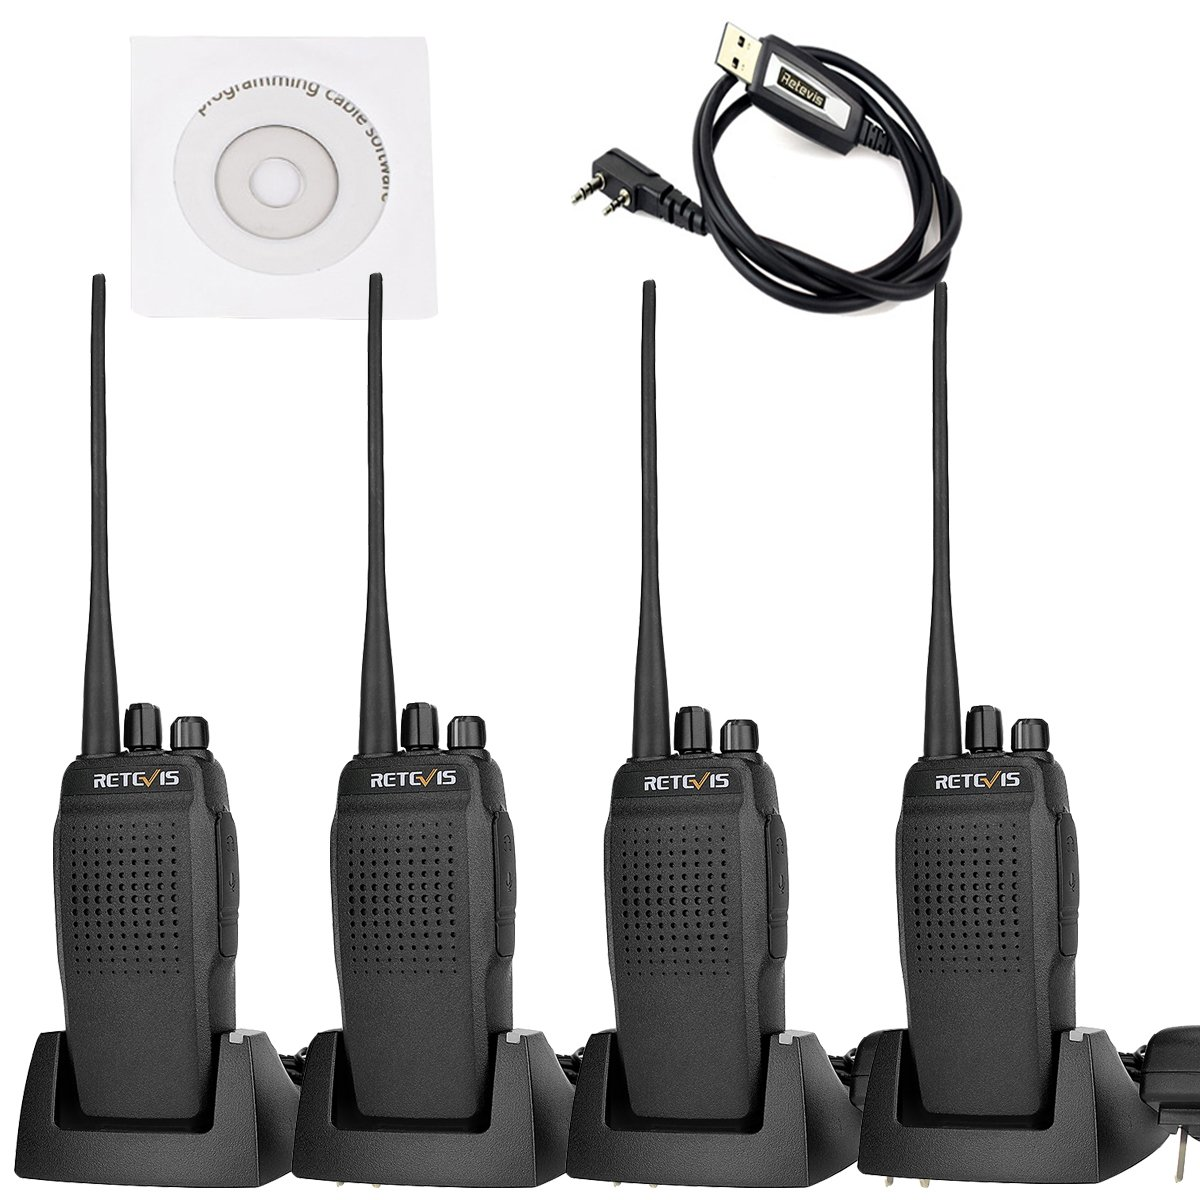 Retevis RT26 Two Way Radio 10W UHF 400-470MHz 3000mAh High Power VOX Scan FM Walkie Talkies(5 Pack) and Programming Cable